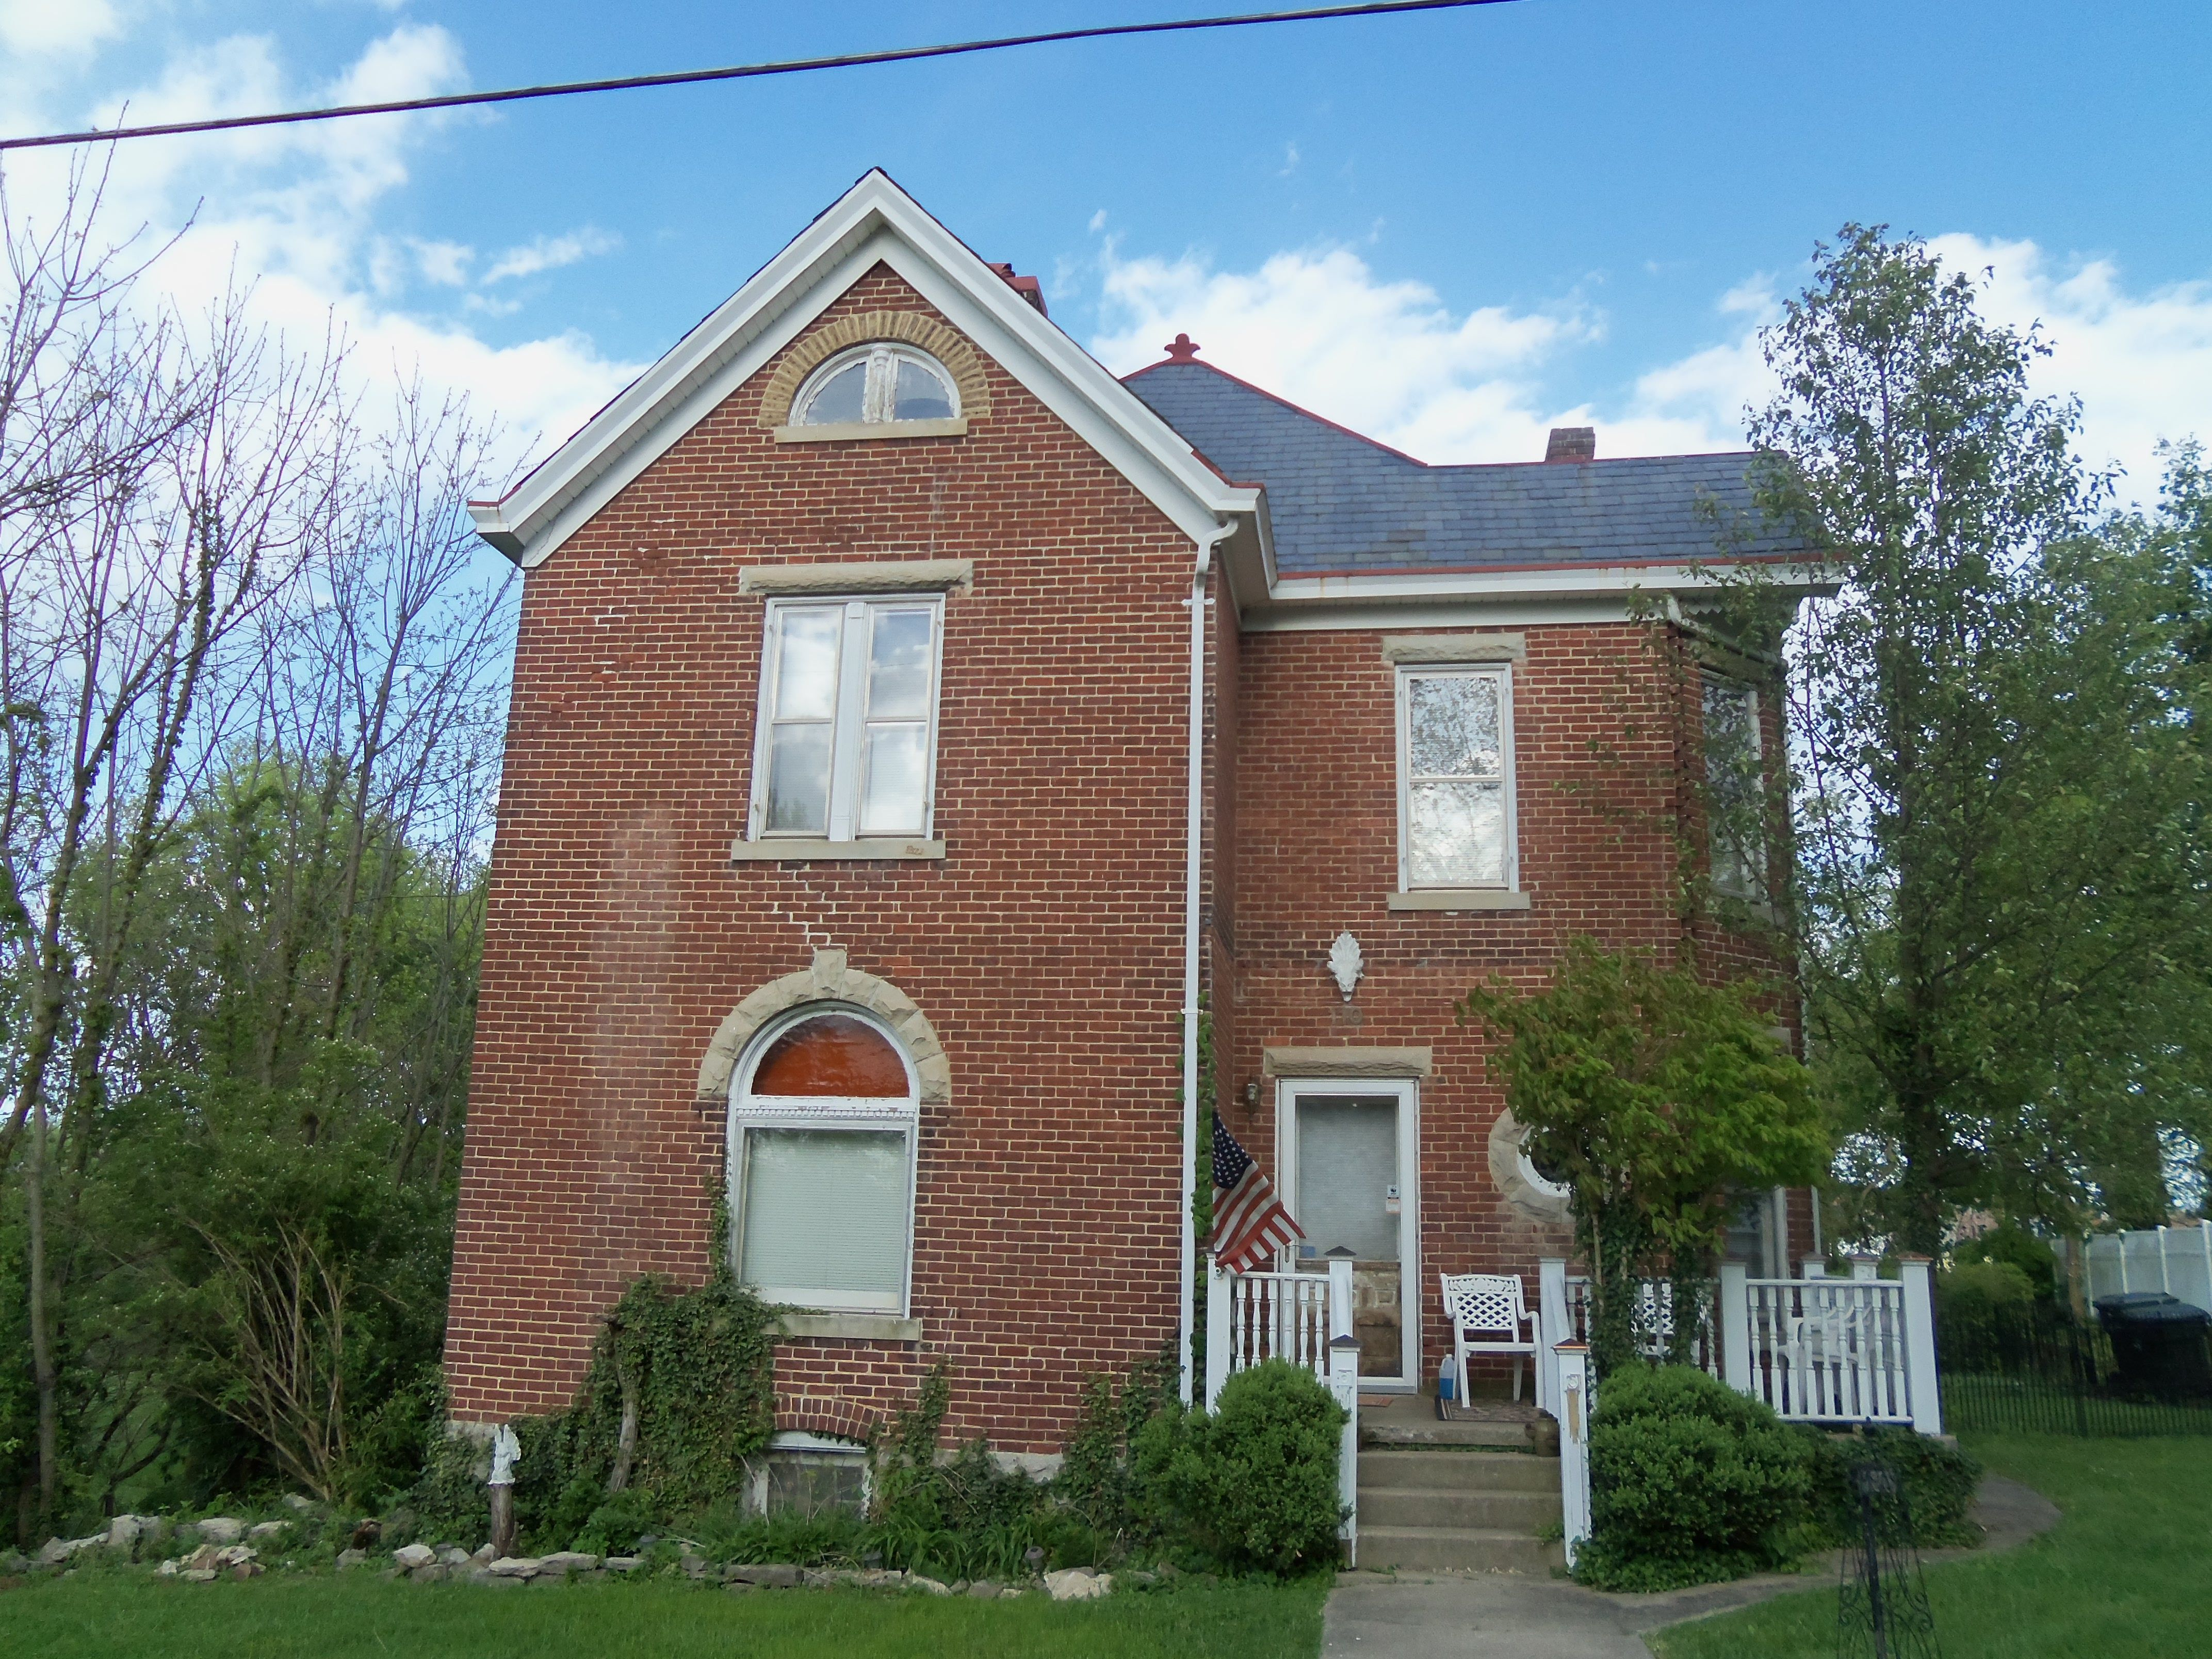 House at 110 kelly avenue ky built early